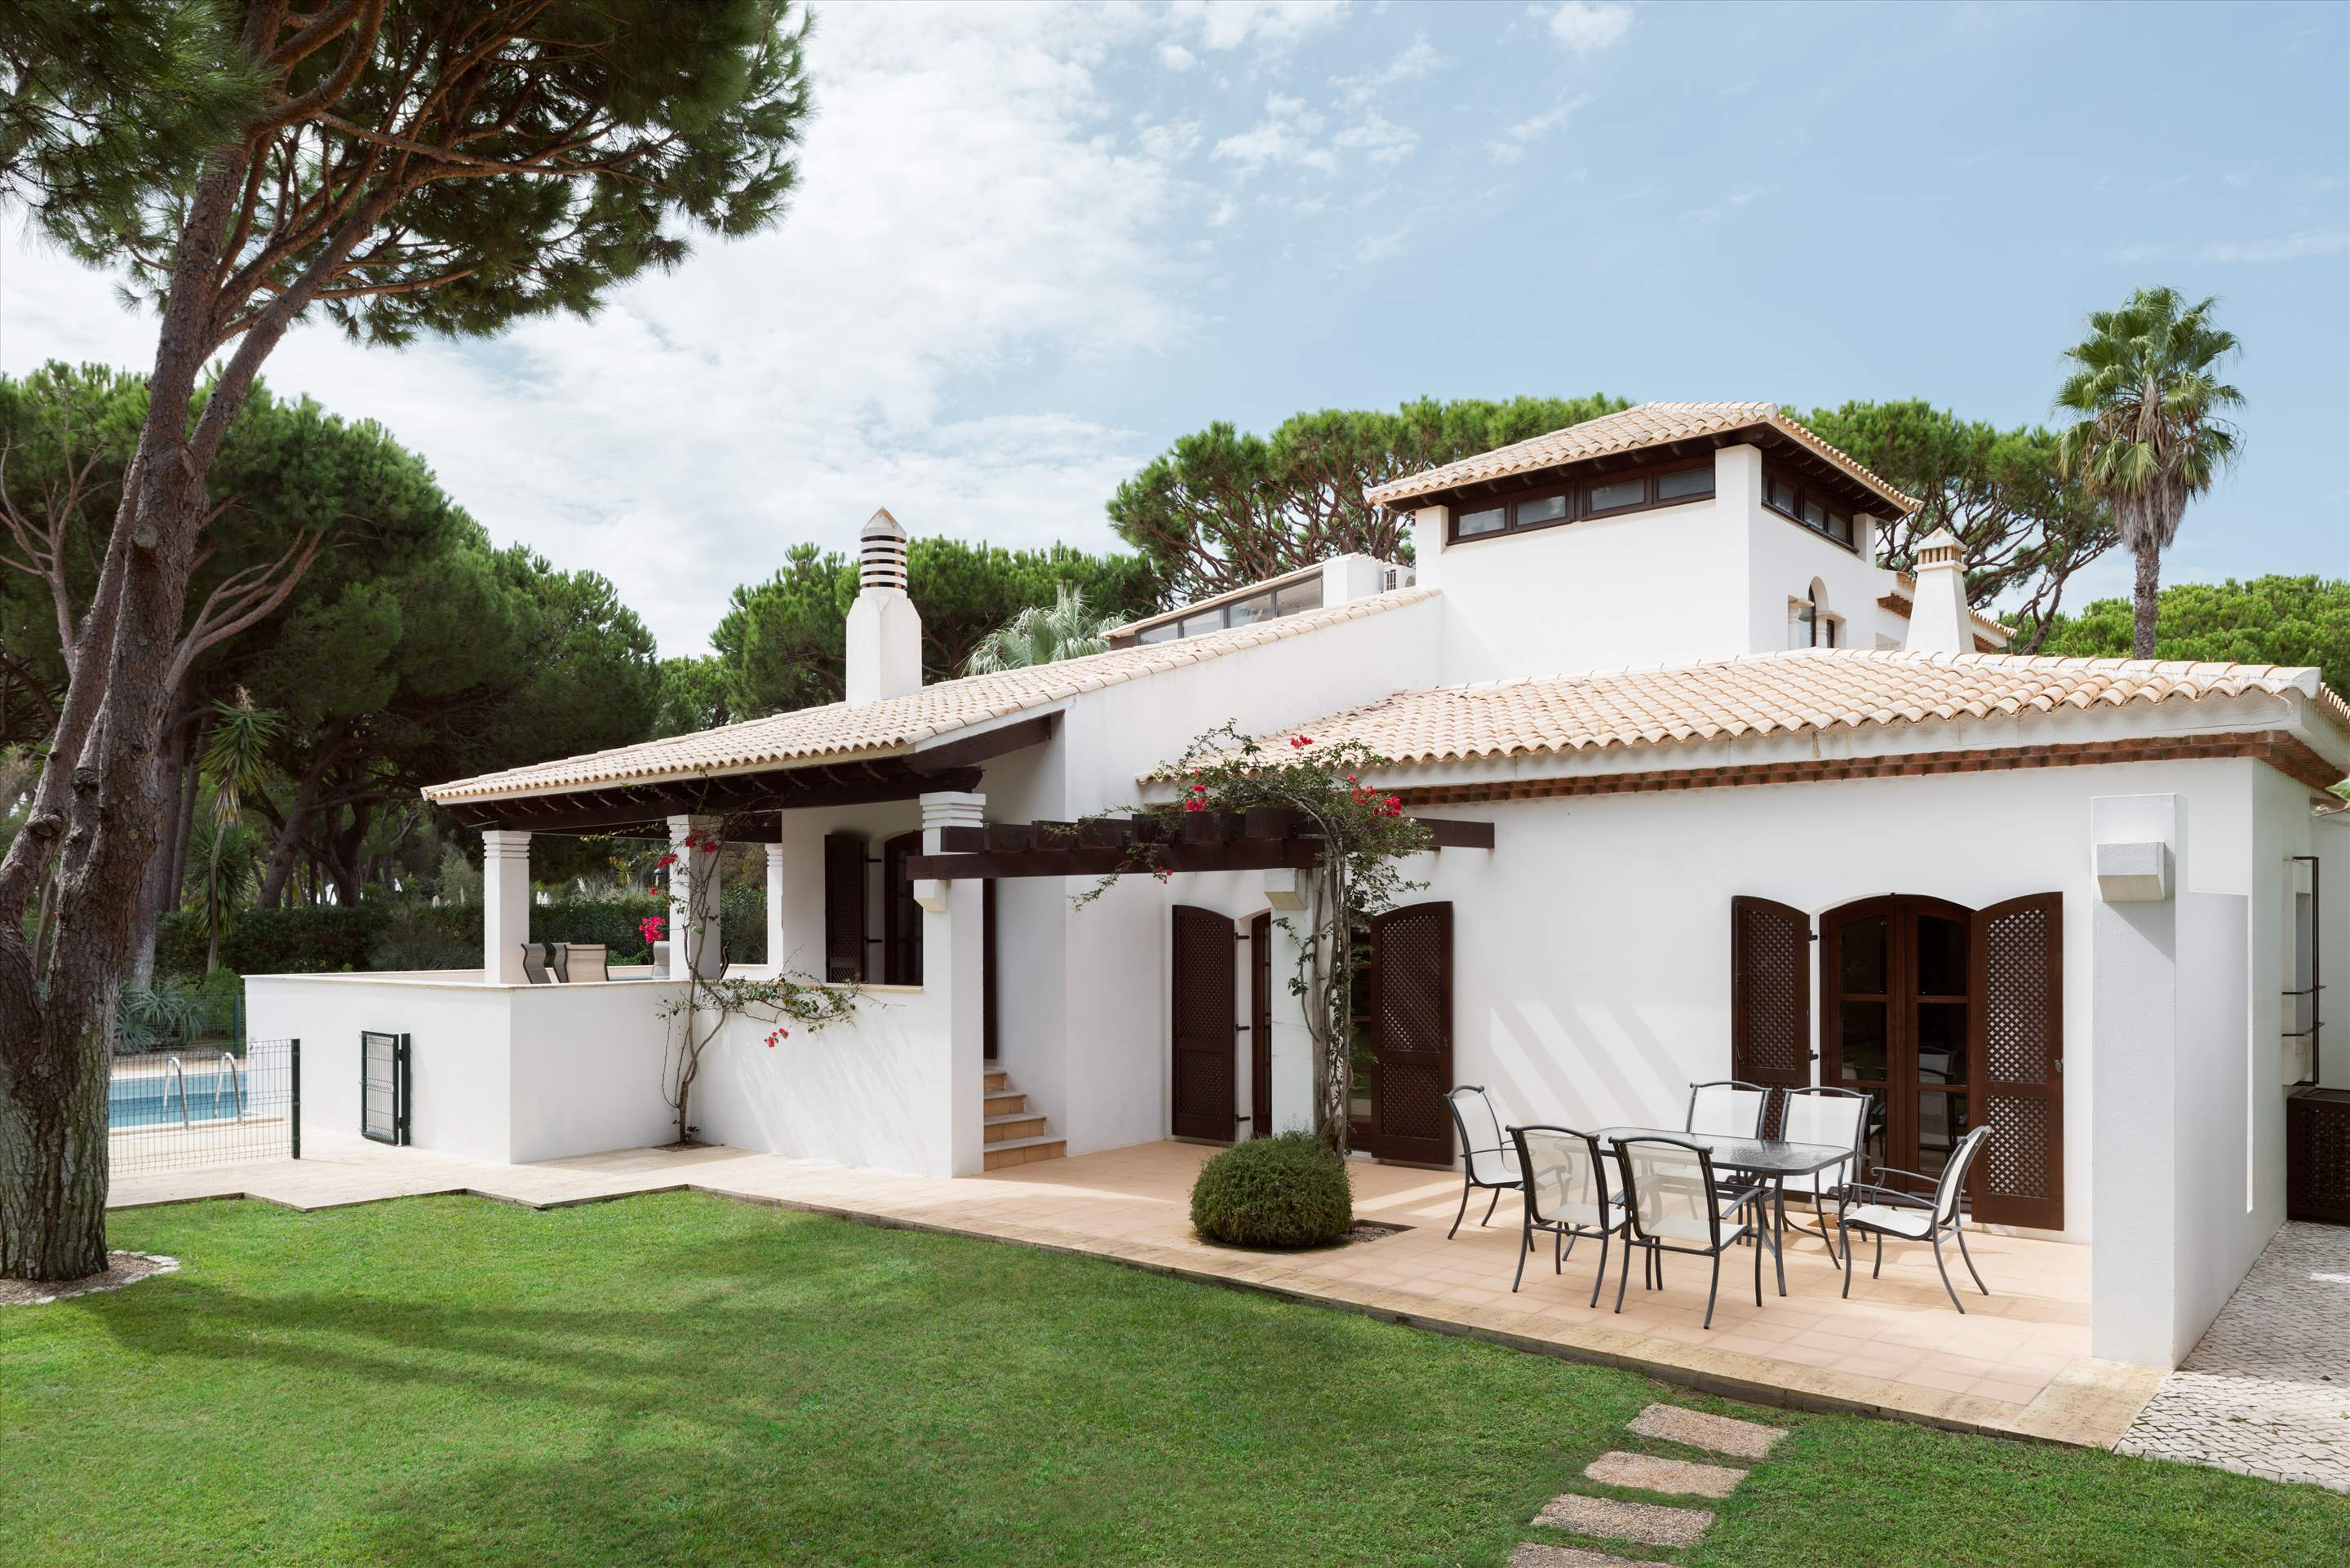 Pine Cliffs Villa Aurora, 4 bedroom villa in Pine Cliffs Resort, Algarve